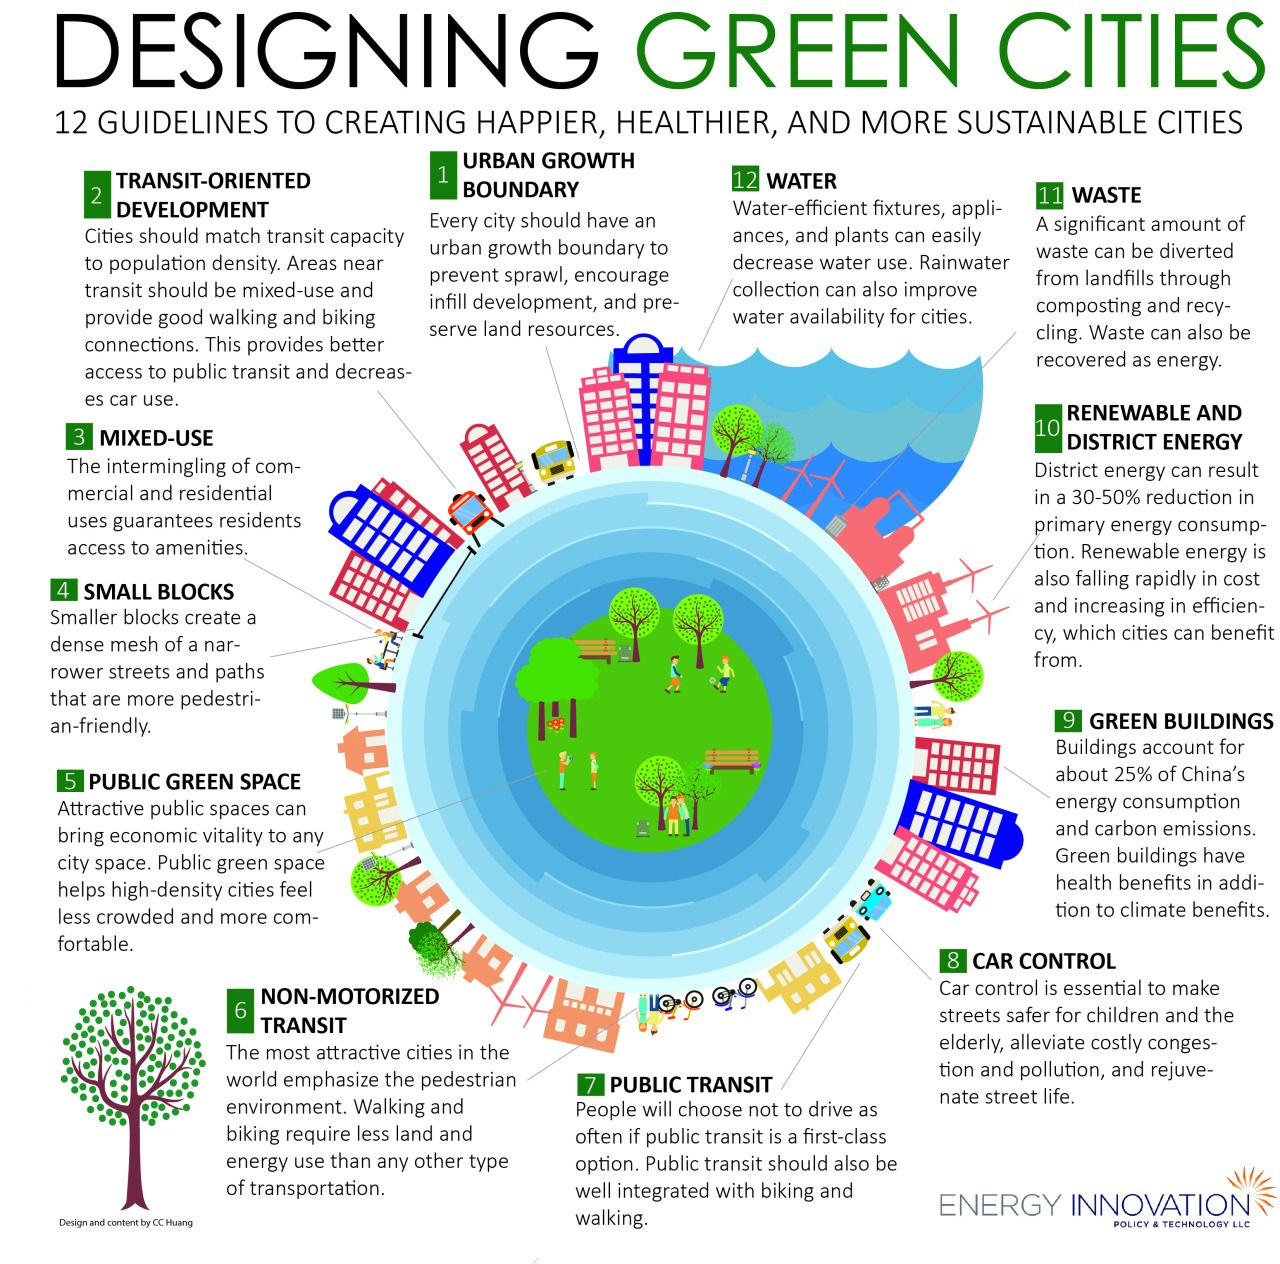 It S Getting Hot In Here Designing Green Cities Infographic From C40 Cities Pulling From